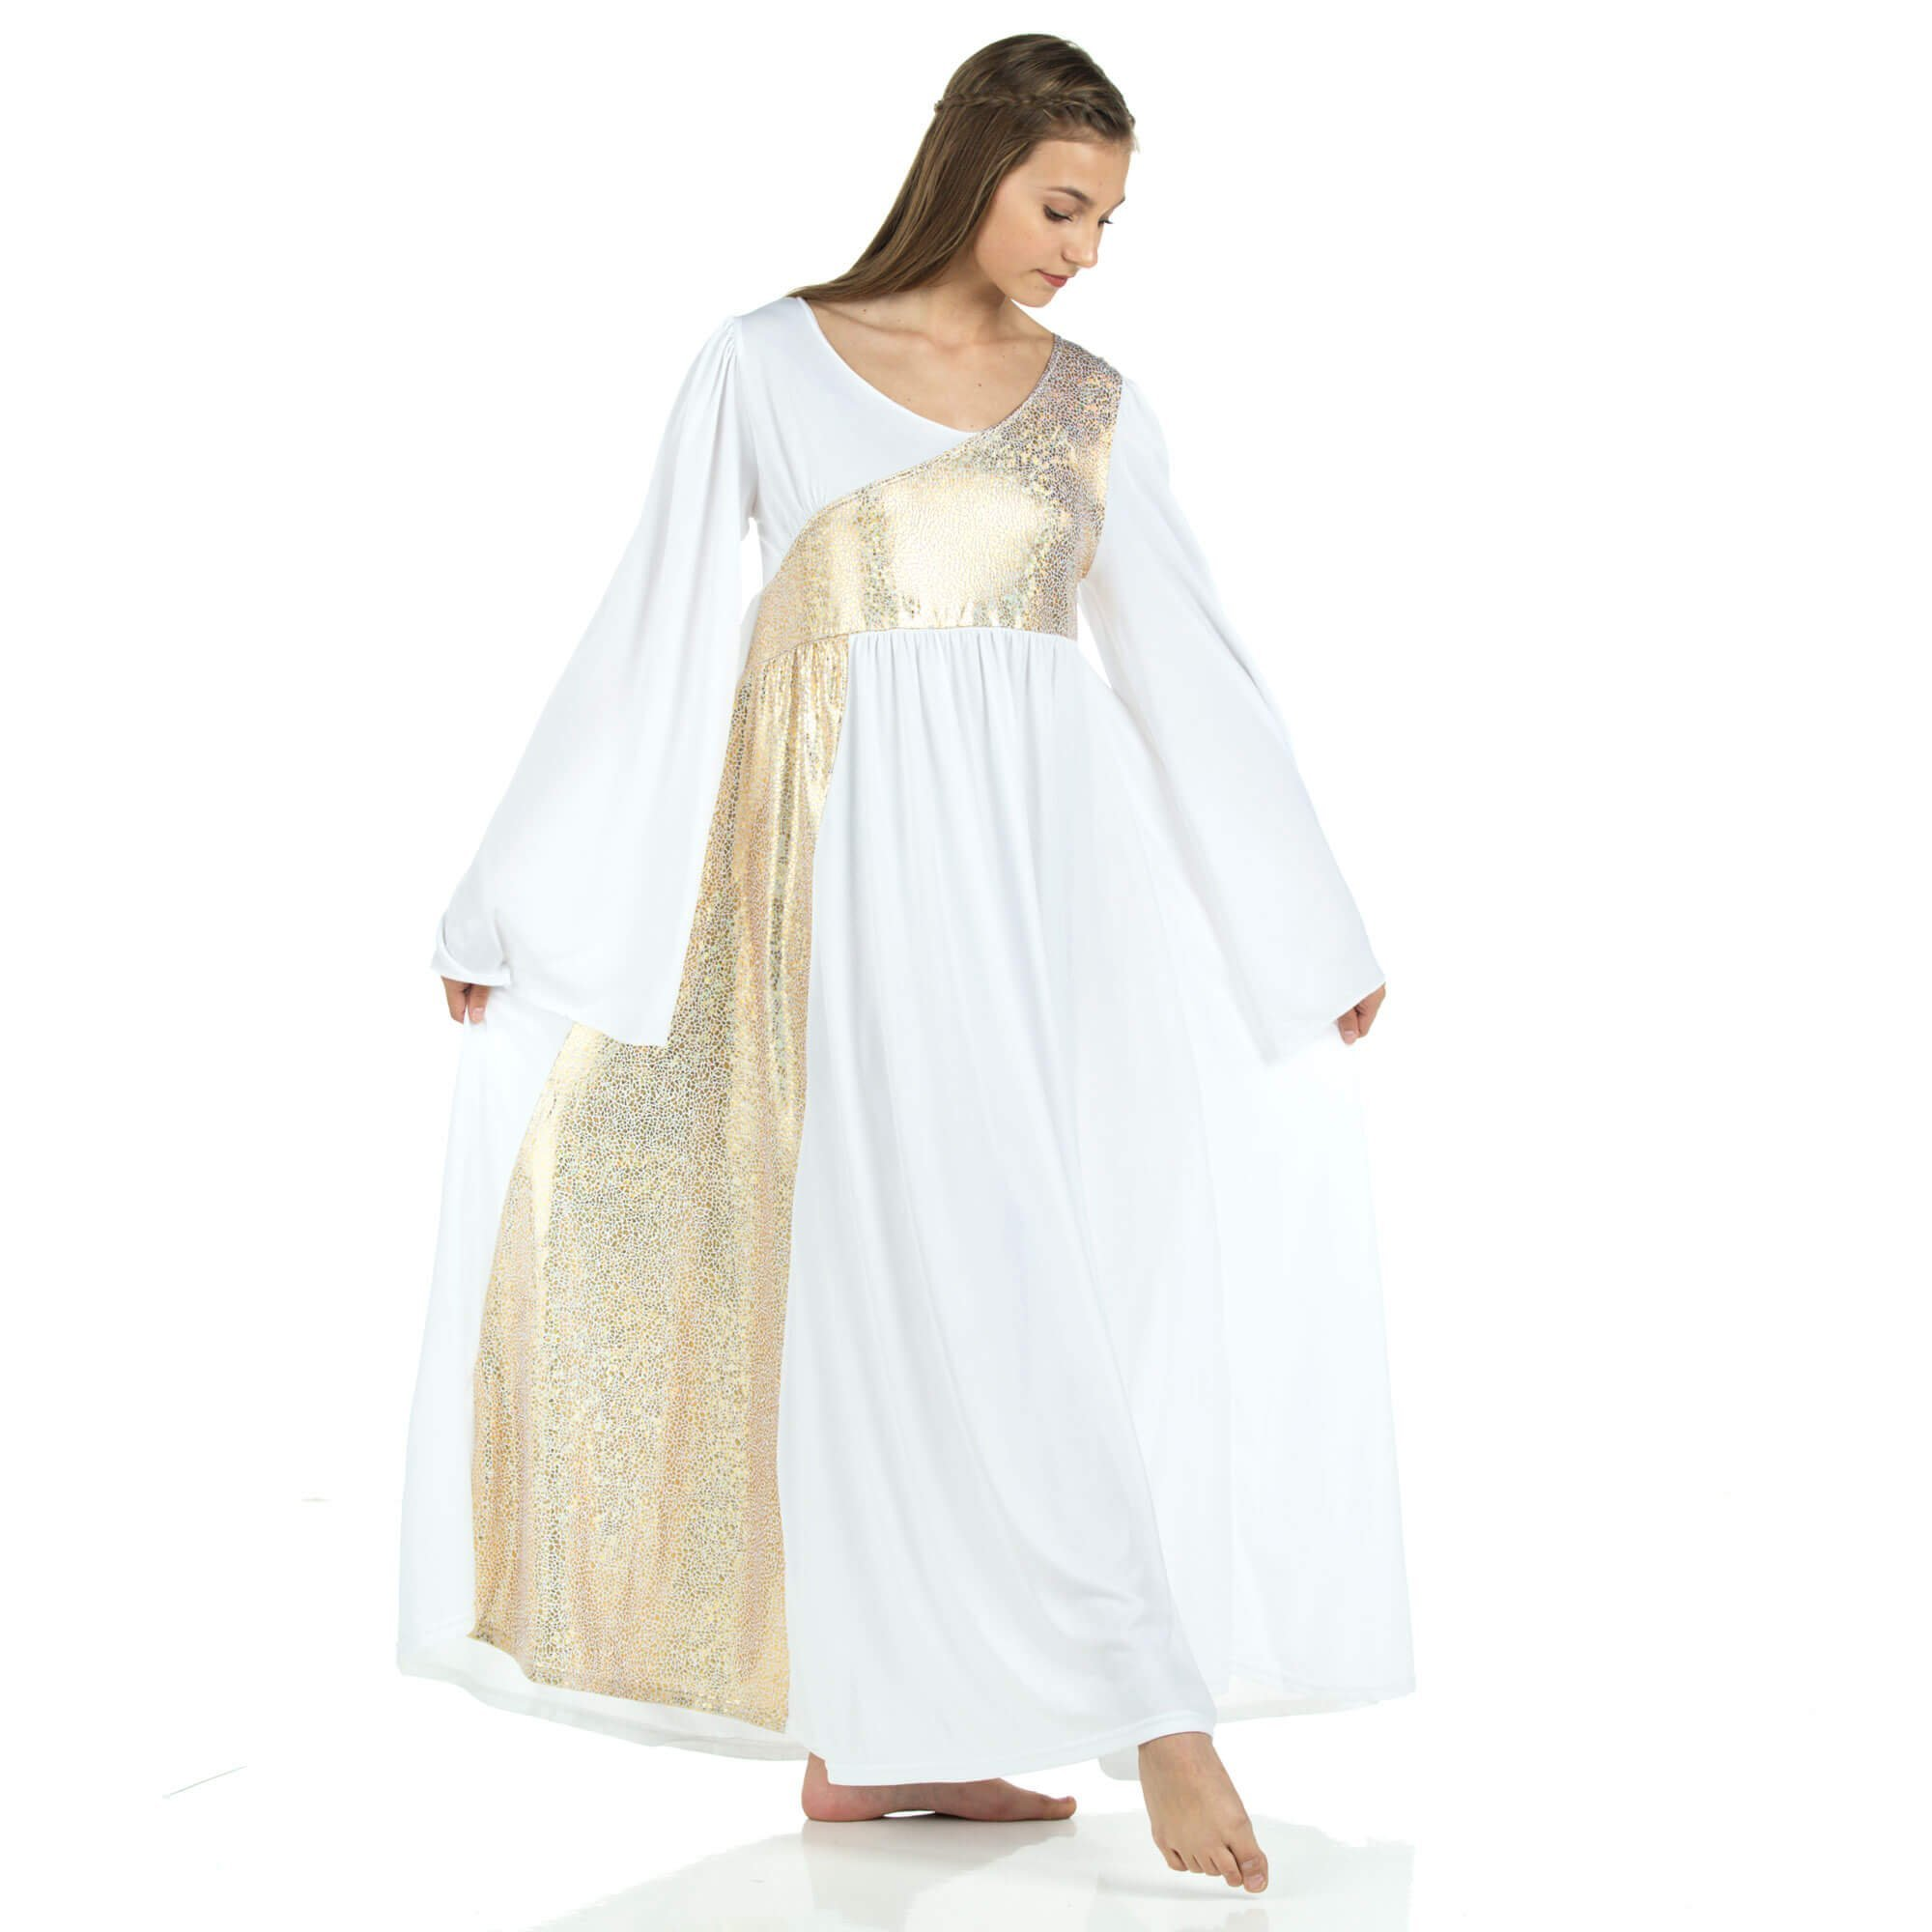 Danzcue Shimmery Asymmetrical Bell Sleeve Dress